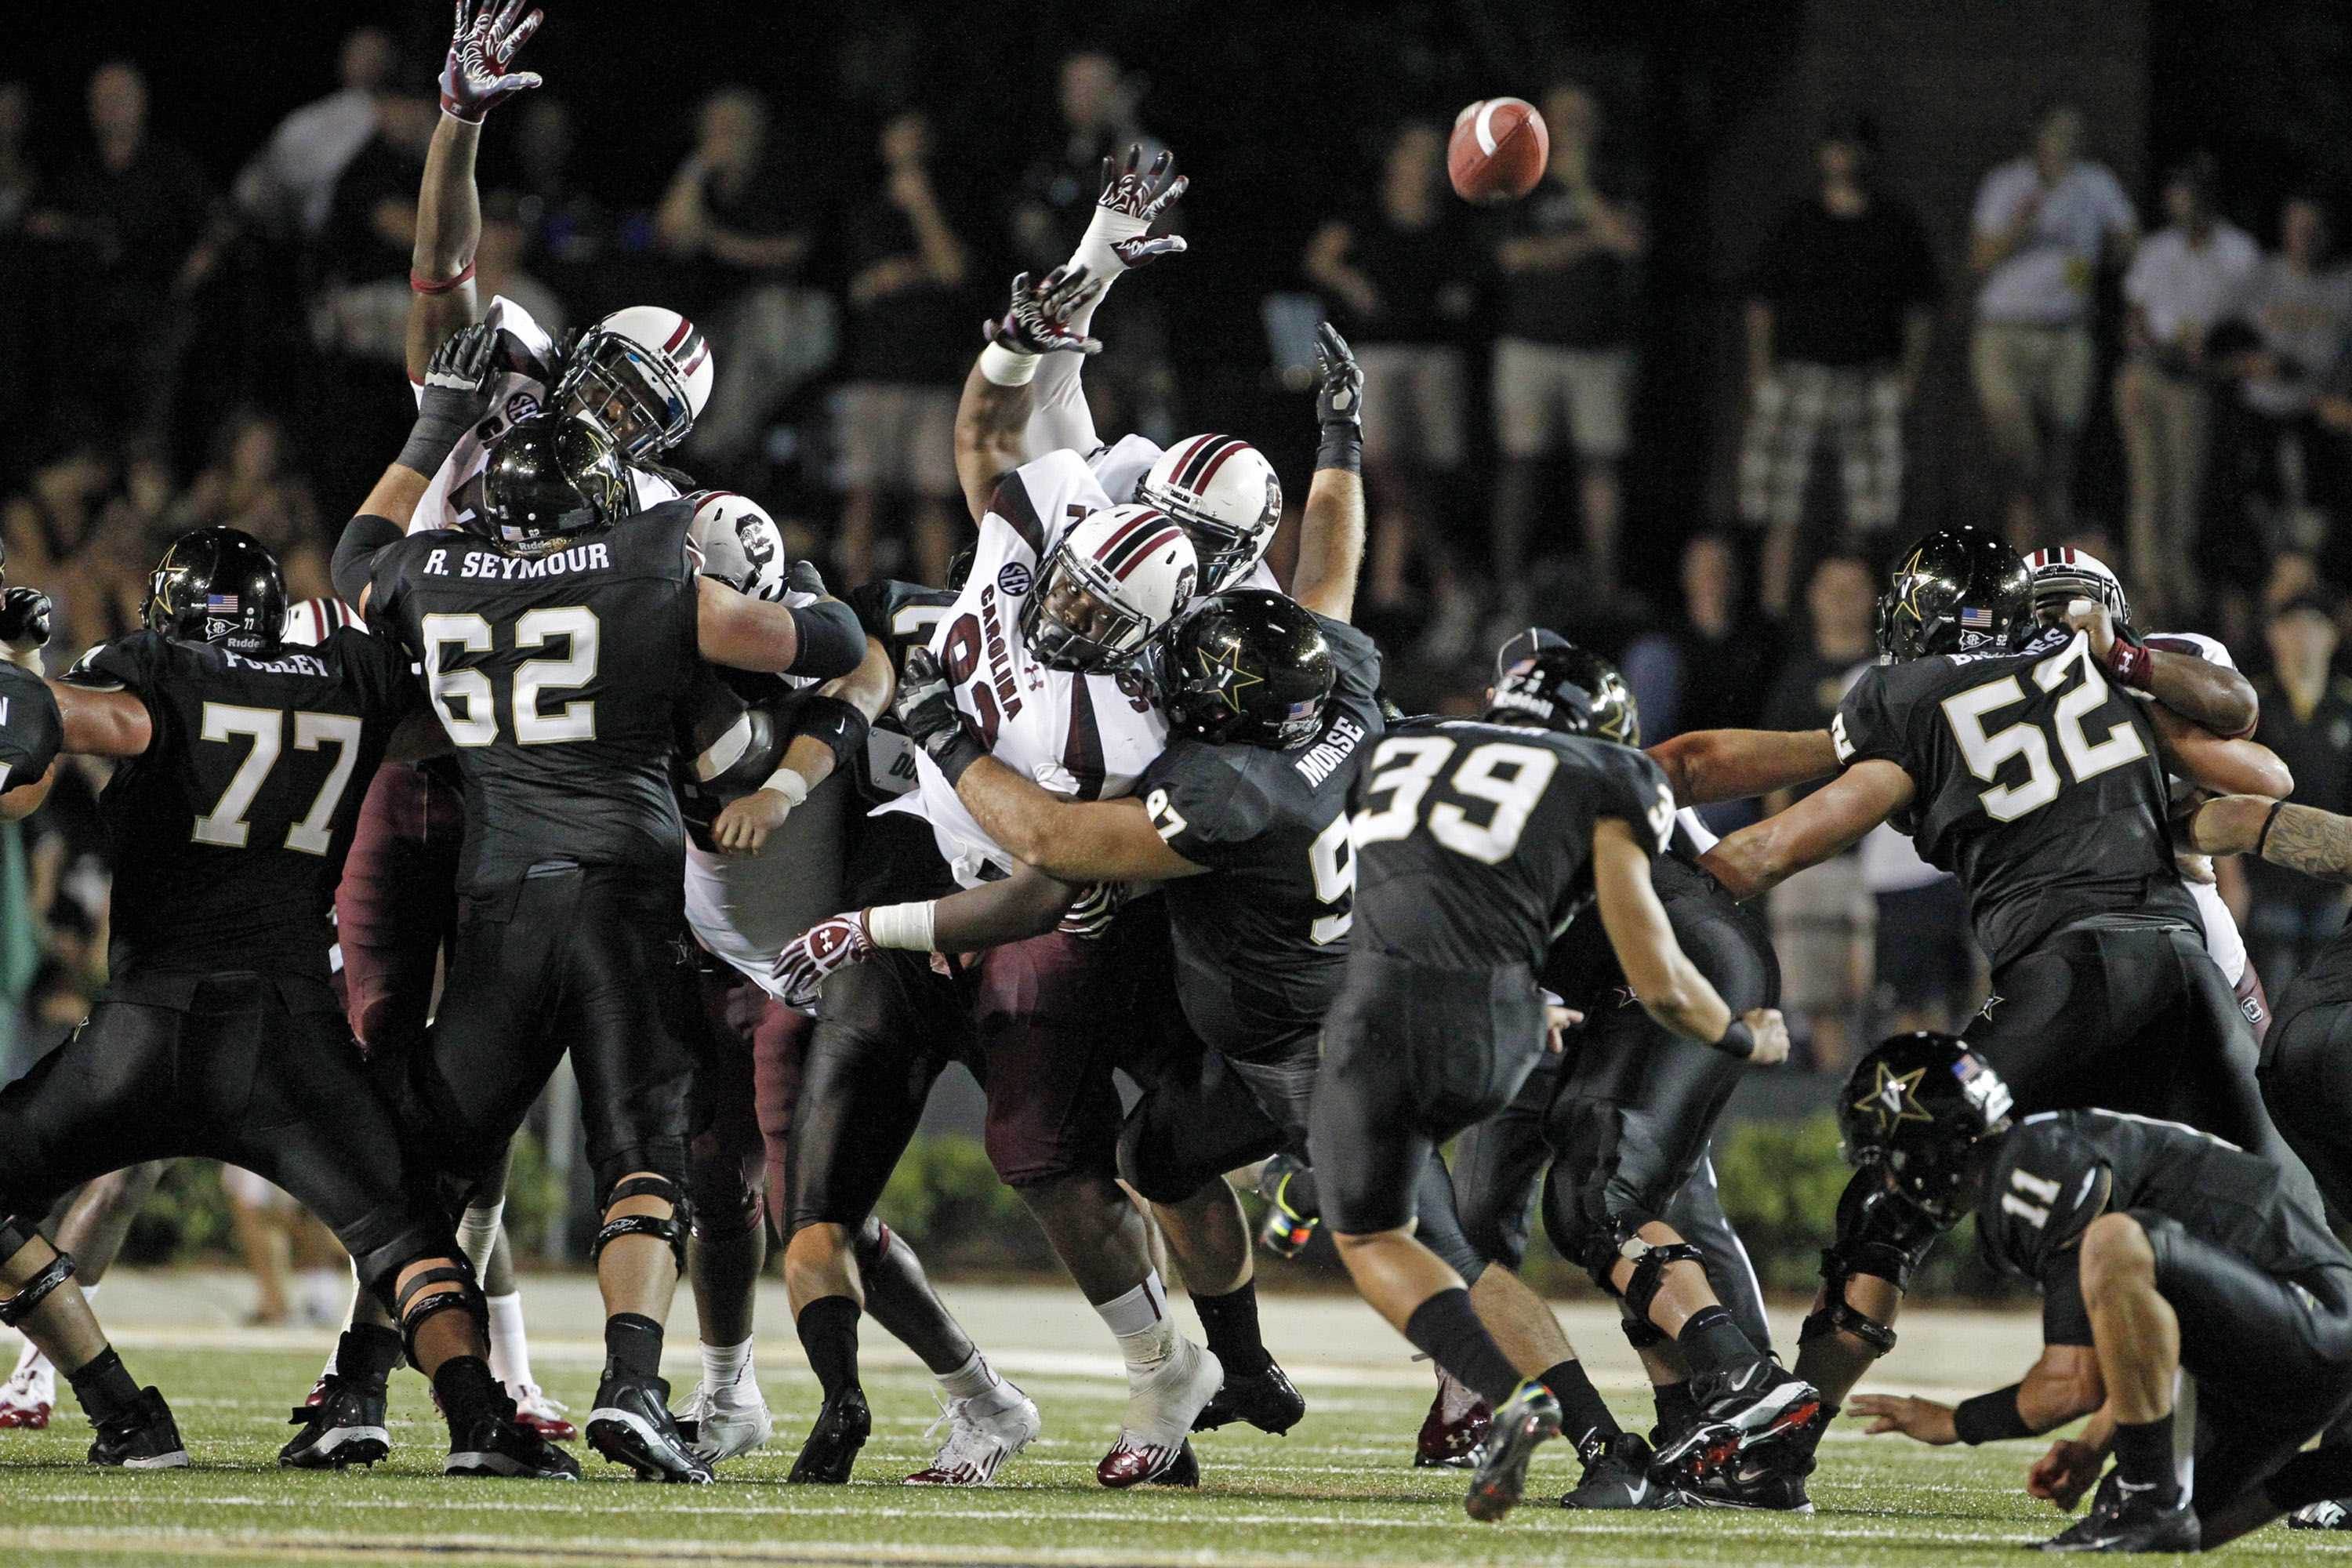 Carey Spear (39) kicks a field goal against South Carolina on August 30, 2012.  Spear made two field goals and an extra point in a 17-13 loss.  (Gerry Melendez/The State/MCT)